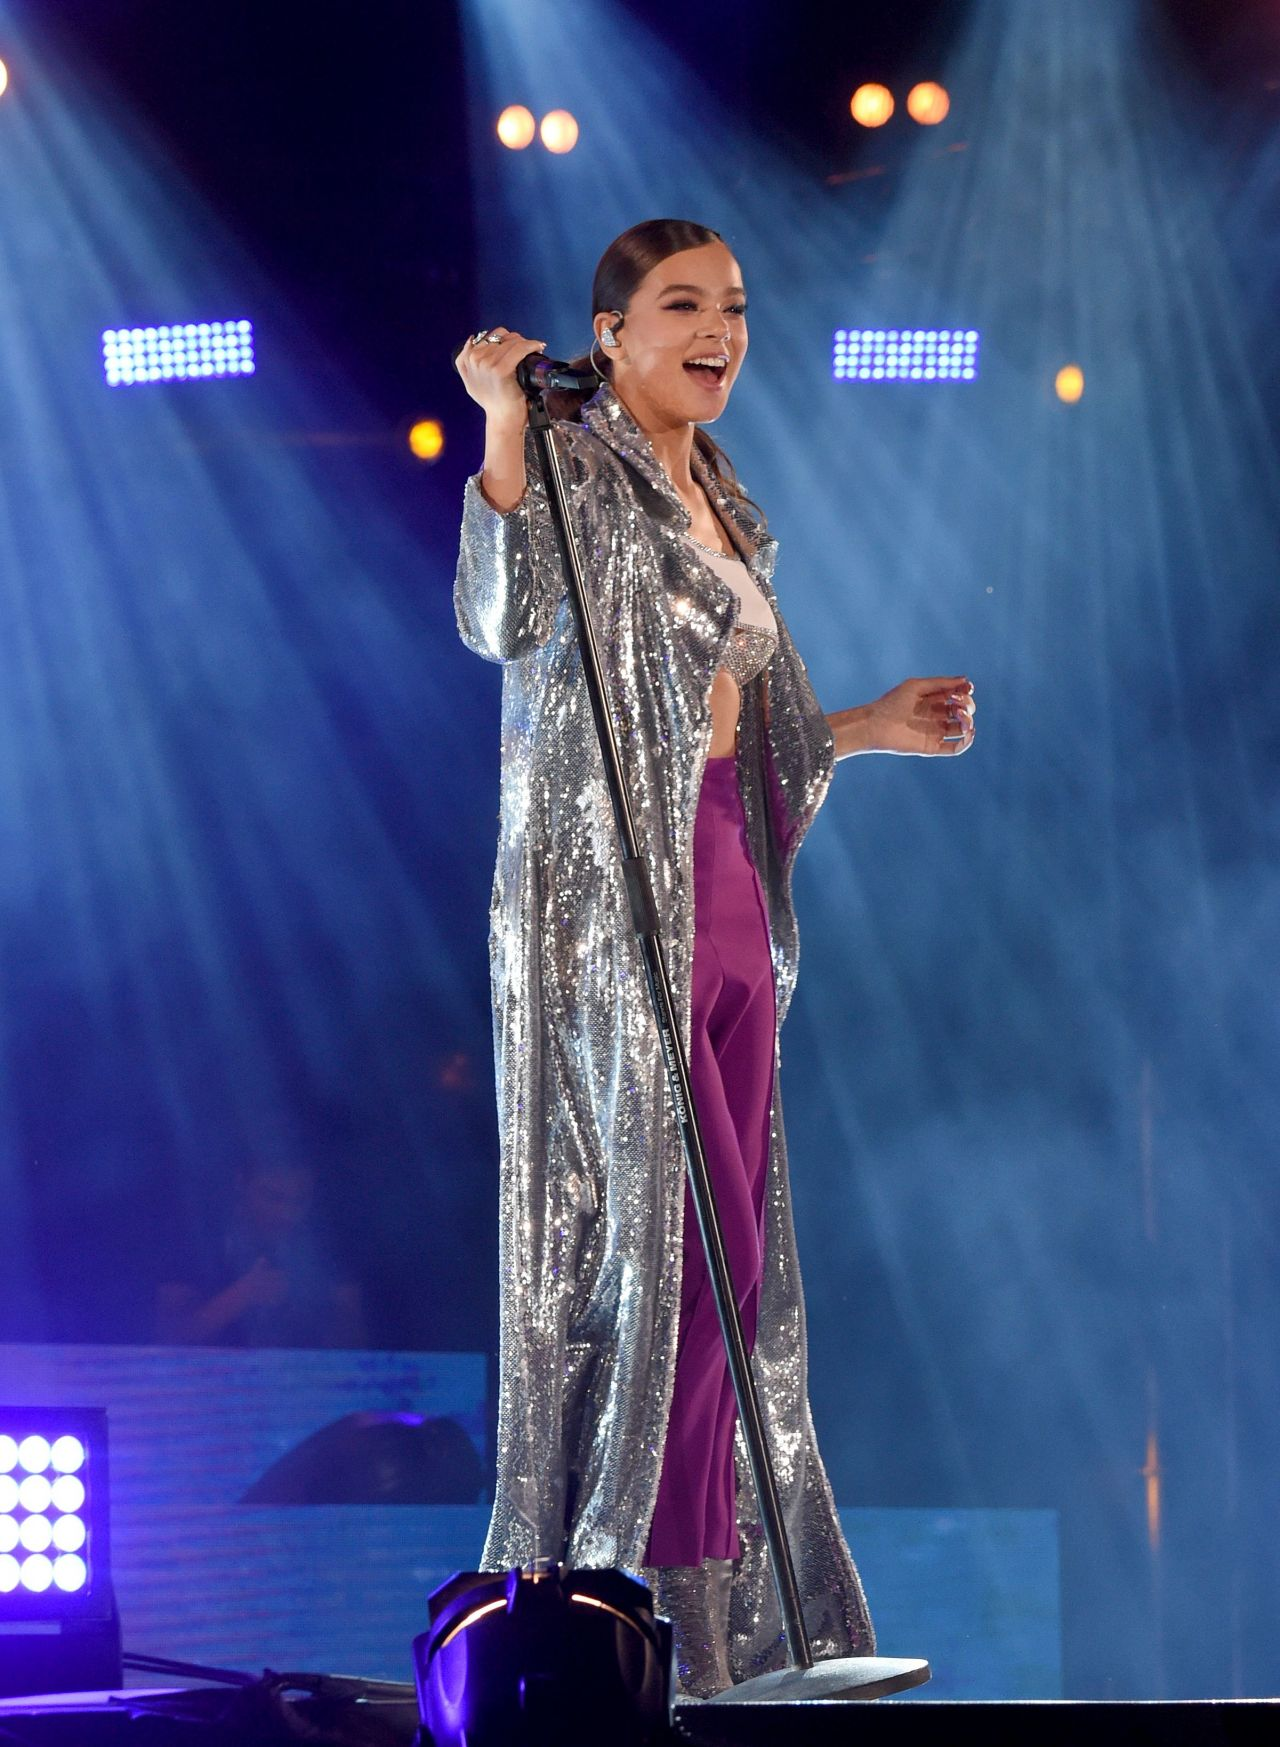 Hailee Steinfeld Performs At The Isle Of Mtv In Malta